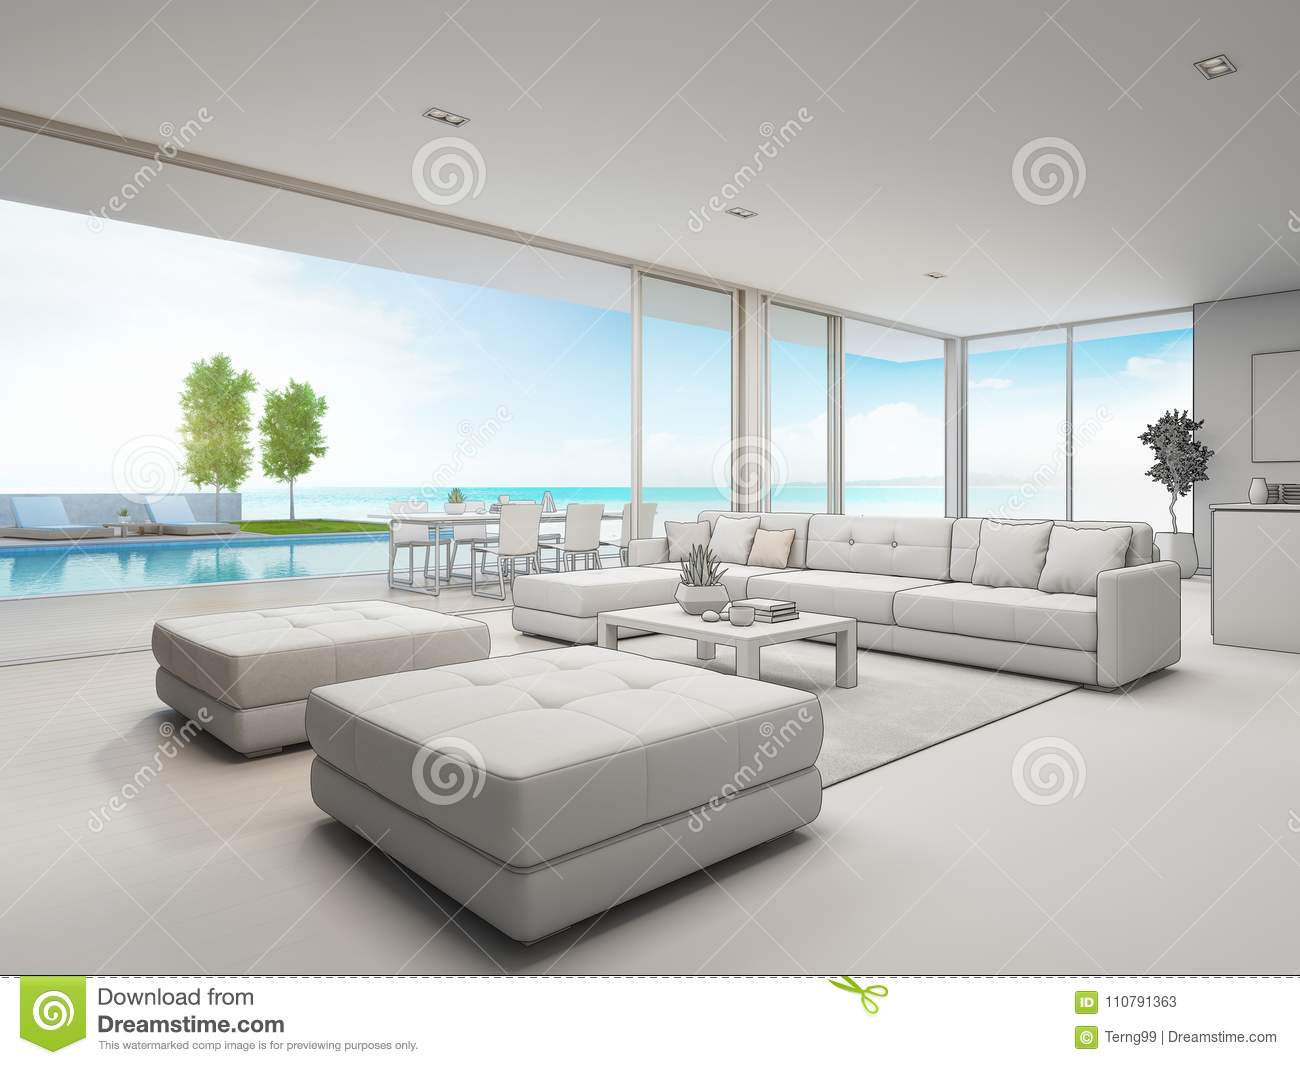 Outdoor dining and sea view living room of luxury beach house with terrace near swimming pool